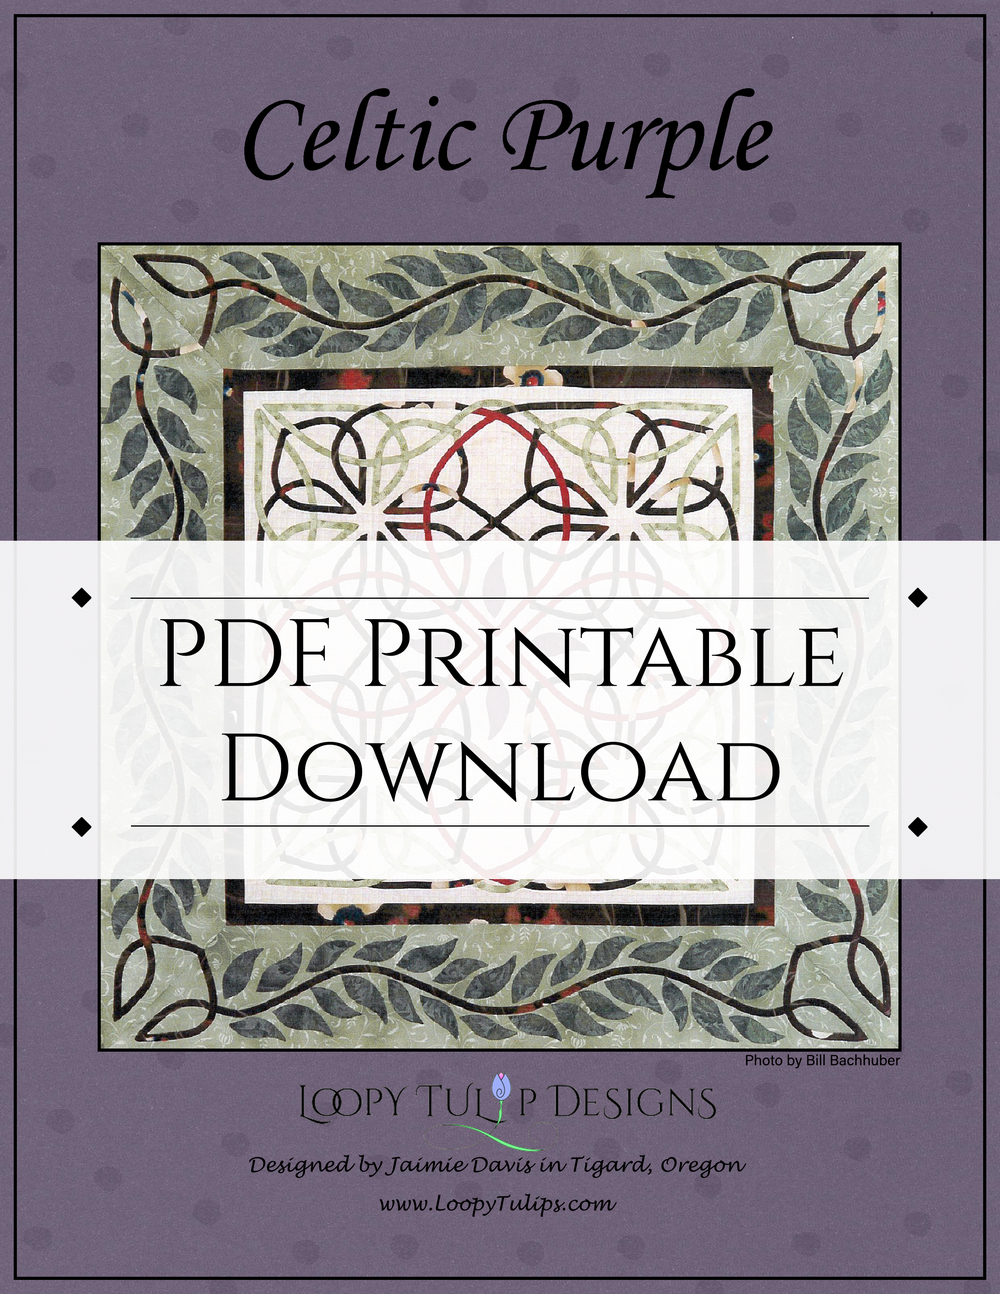 CP PDF Cover.png